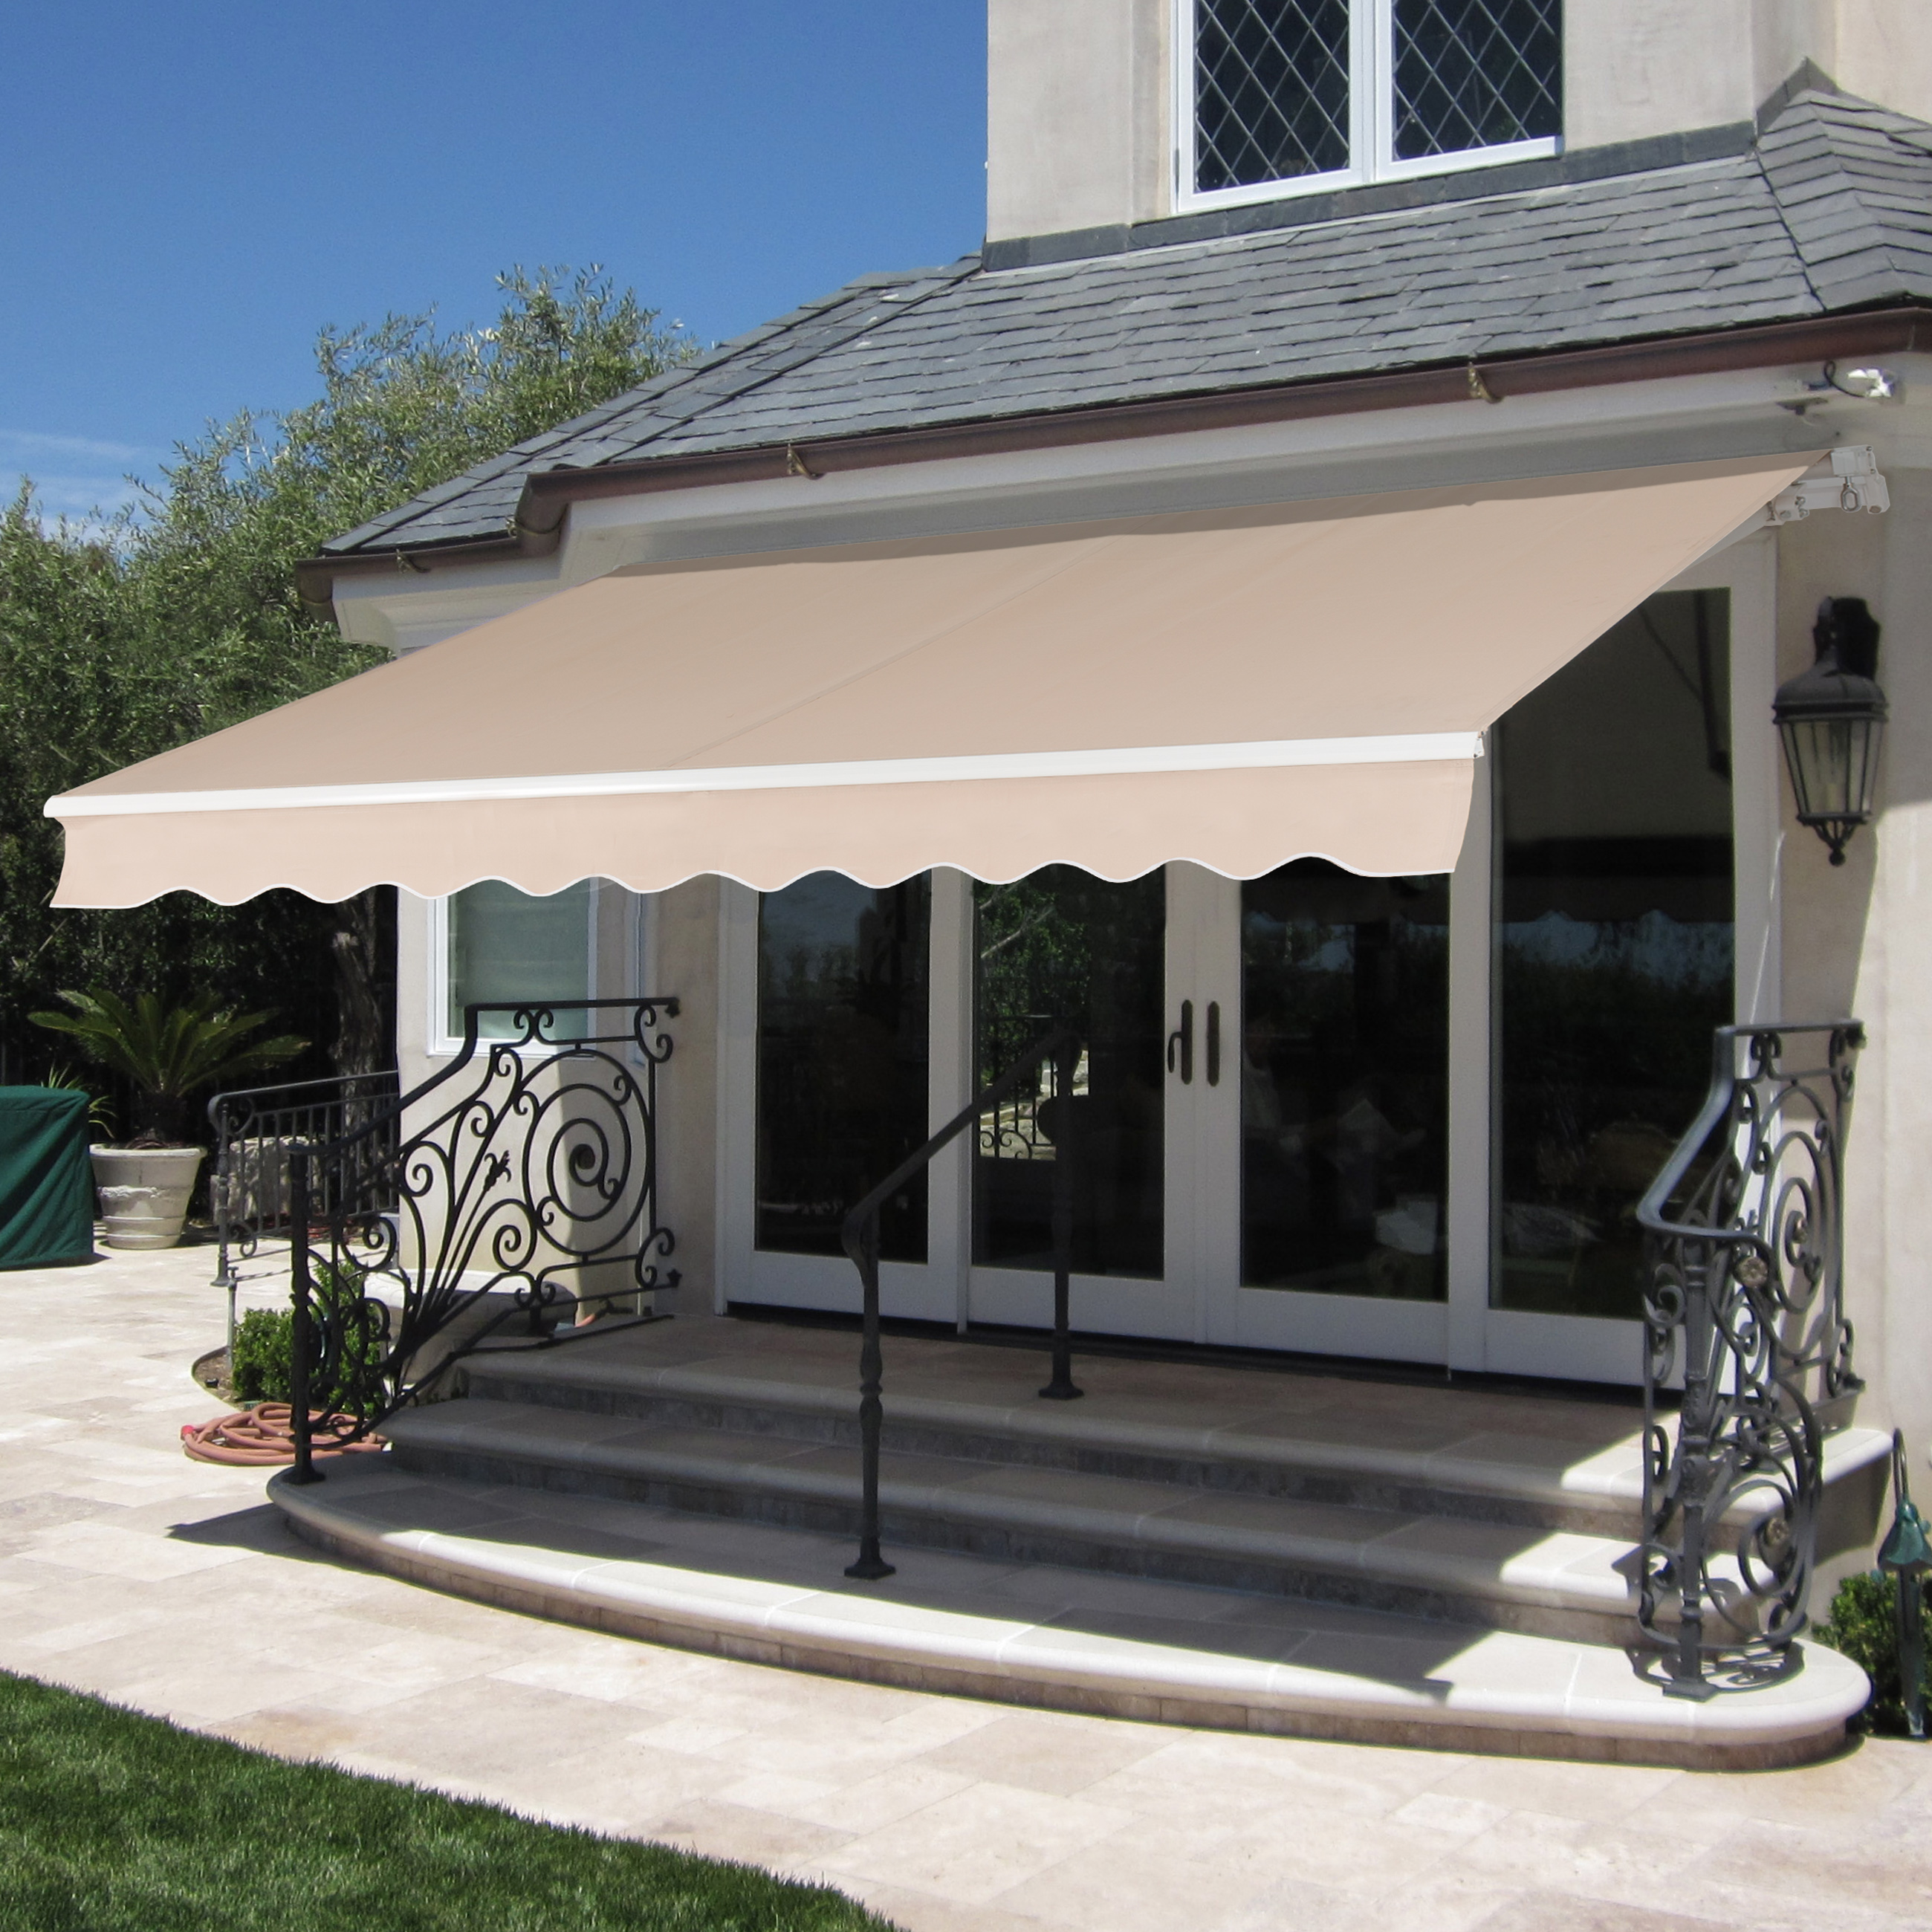 beauty pinterest awning canvas nicely mark green on best retractable covered restaurant what bigger a shadesgroup made images automate times with awnings